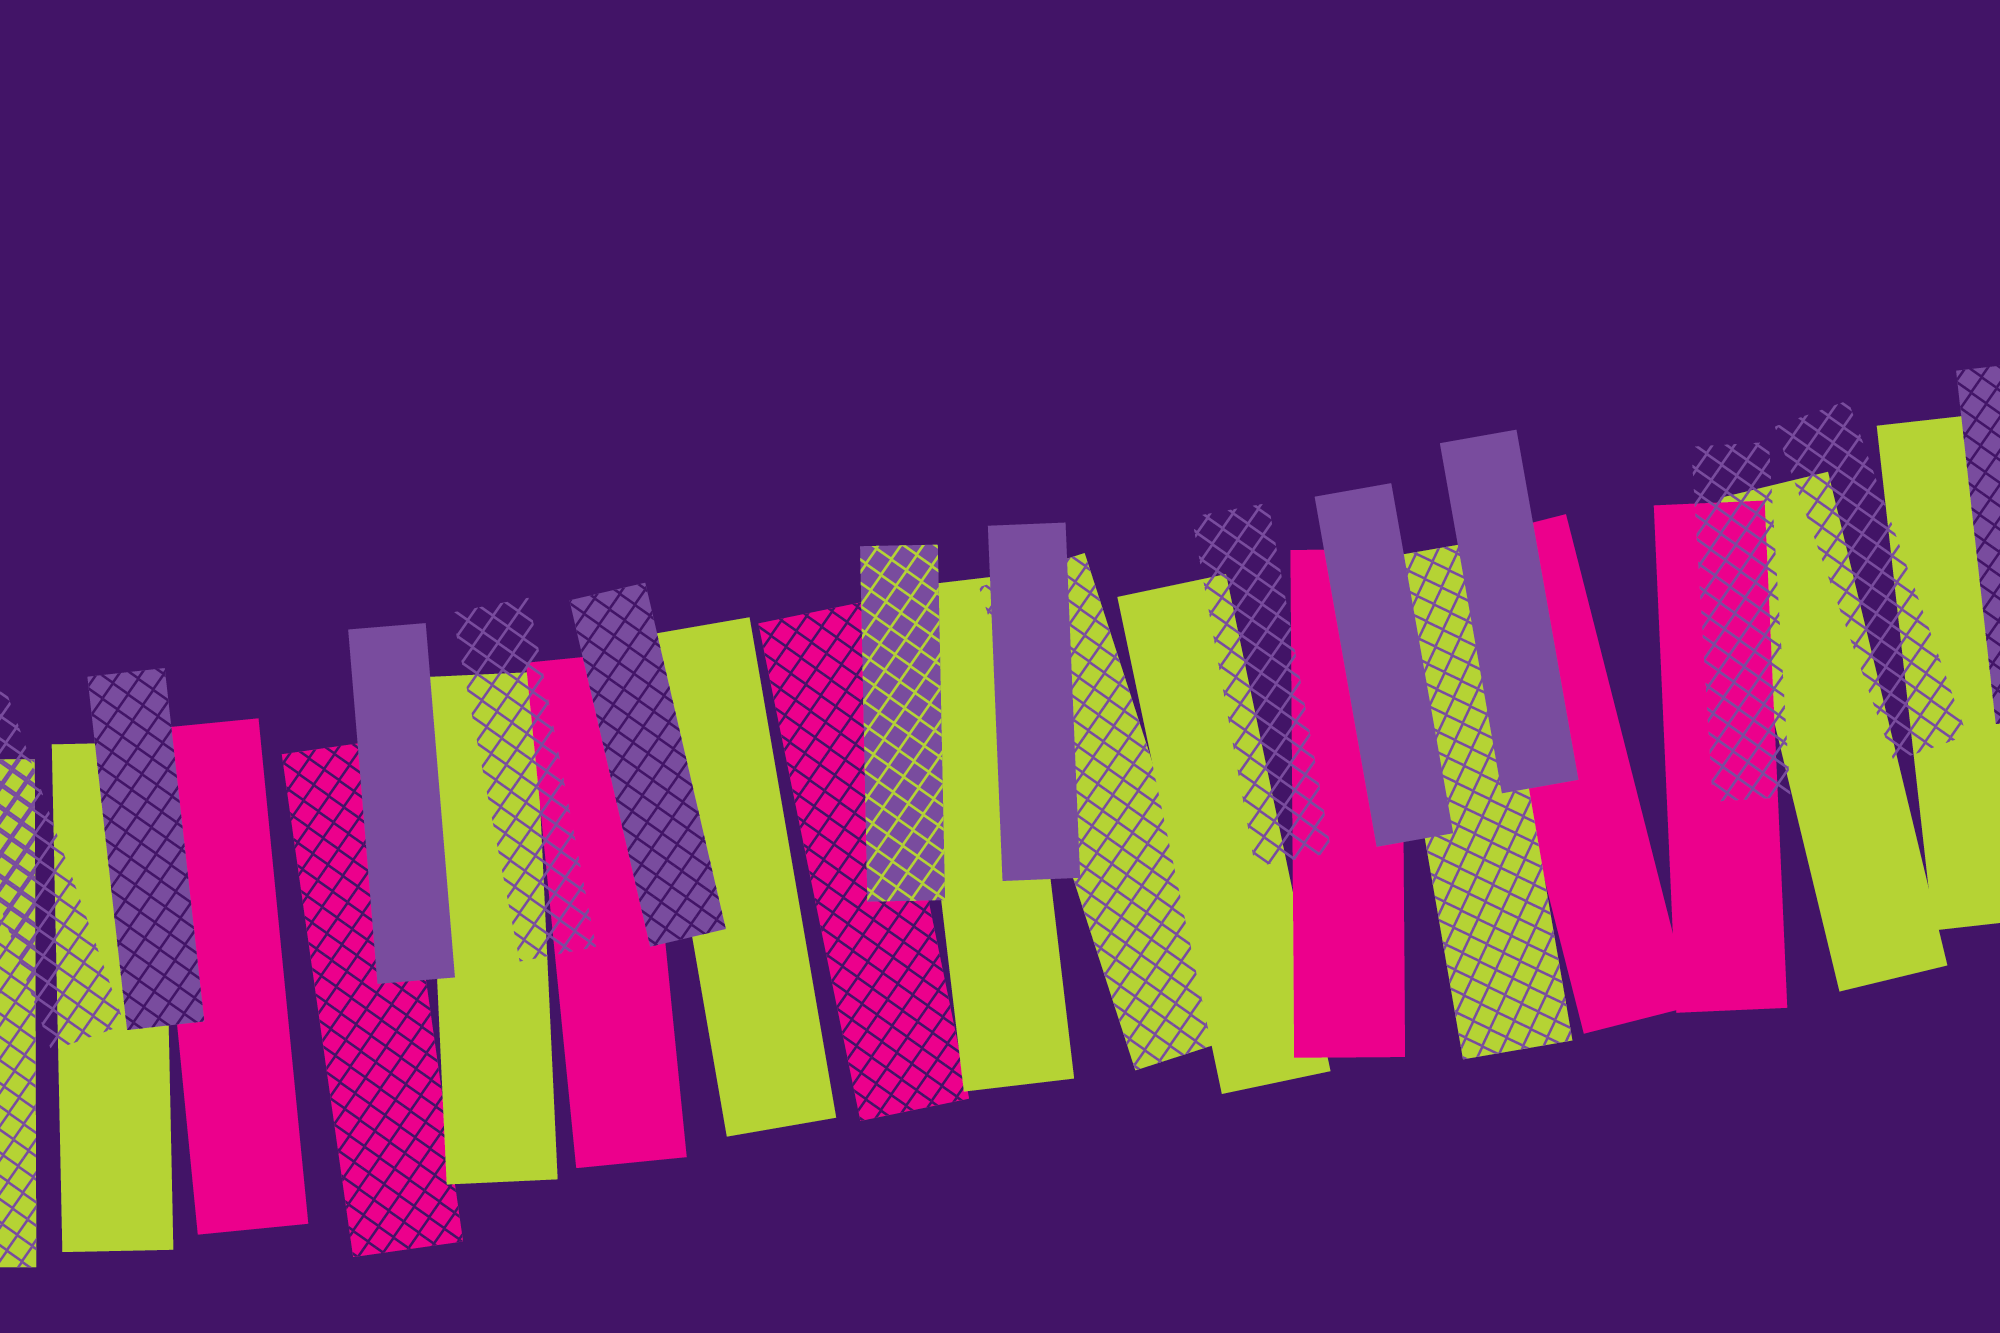 Abstract image of hot pink and lime green piano keys against a purple background.